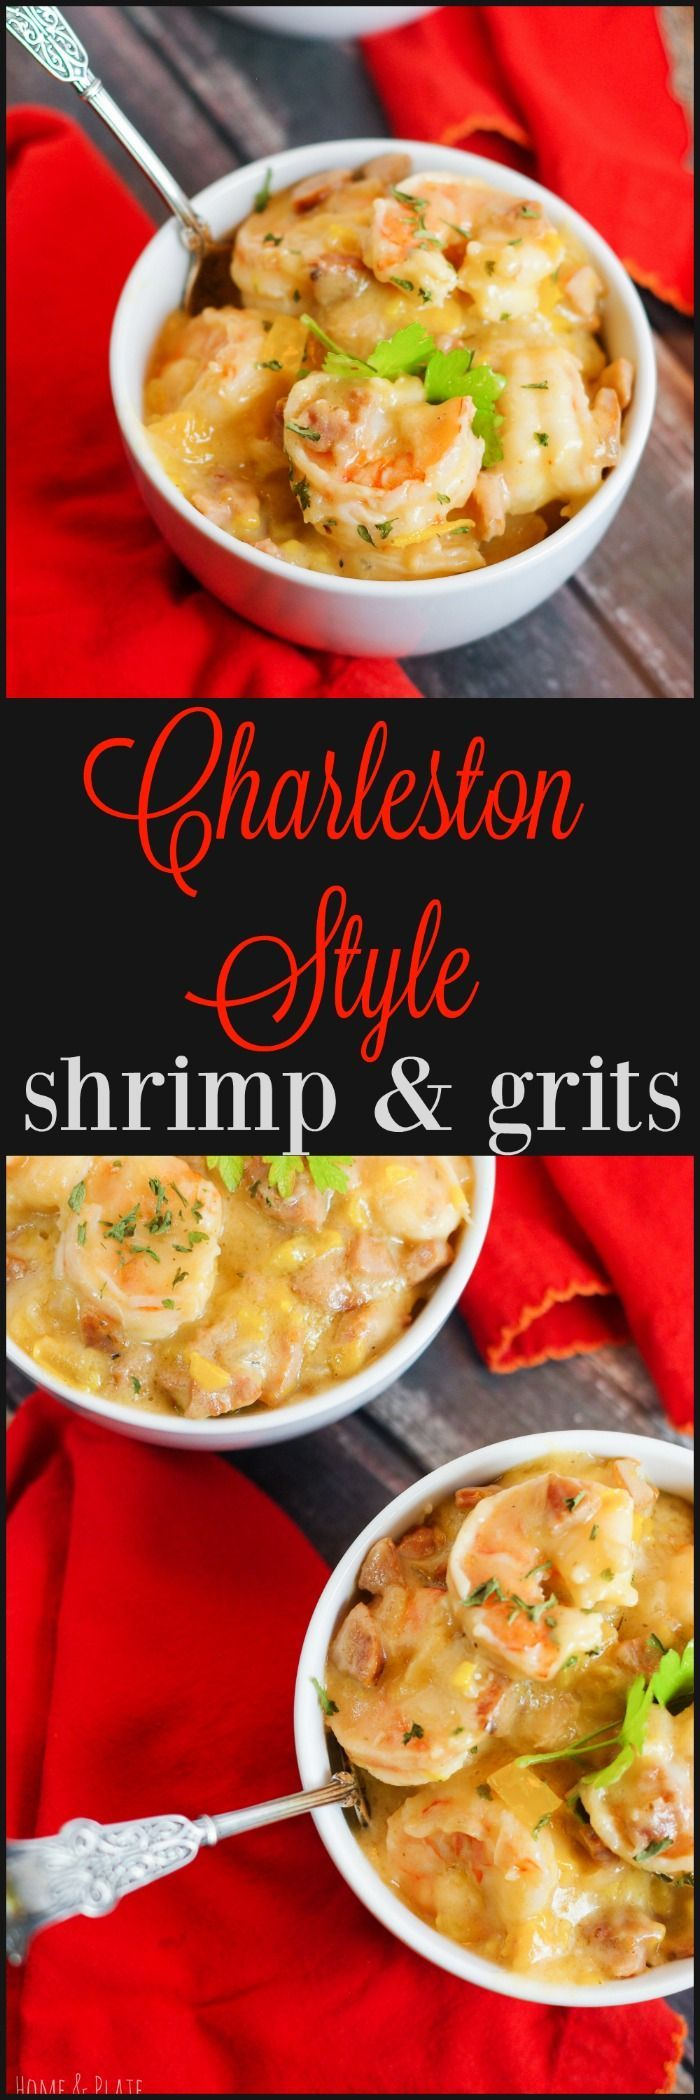 23/1/16 Charleston Style Shrimp & Grits | www.homeandplate.com | The shrimp is pink and tender, the course grits are creamy and cheesy and the heat from the andouille sausage will warm your belly.